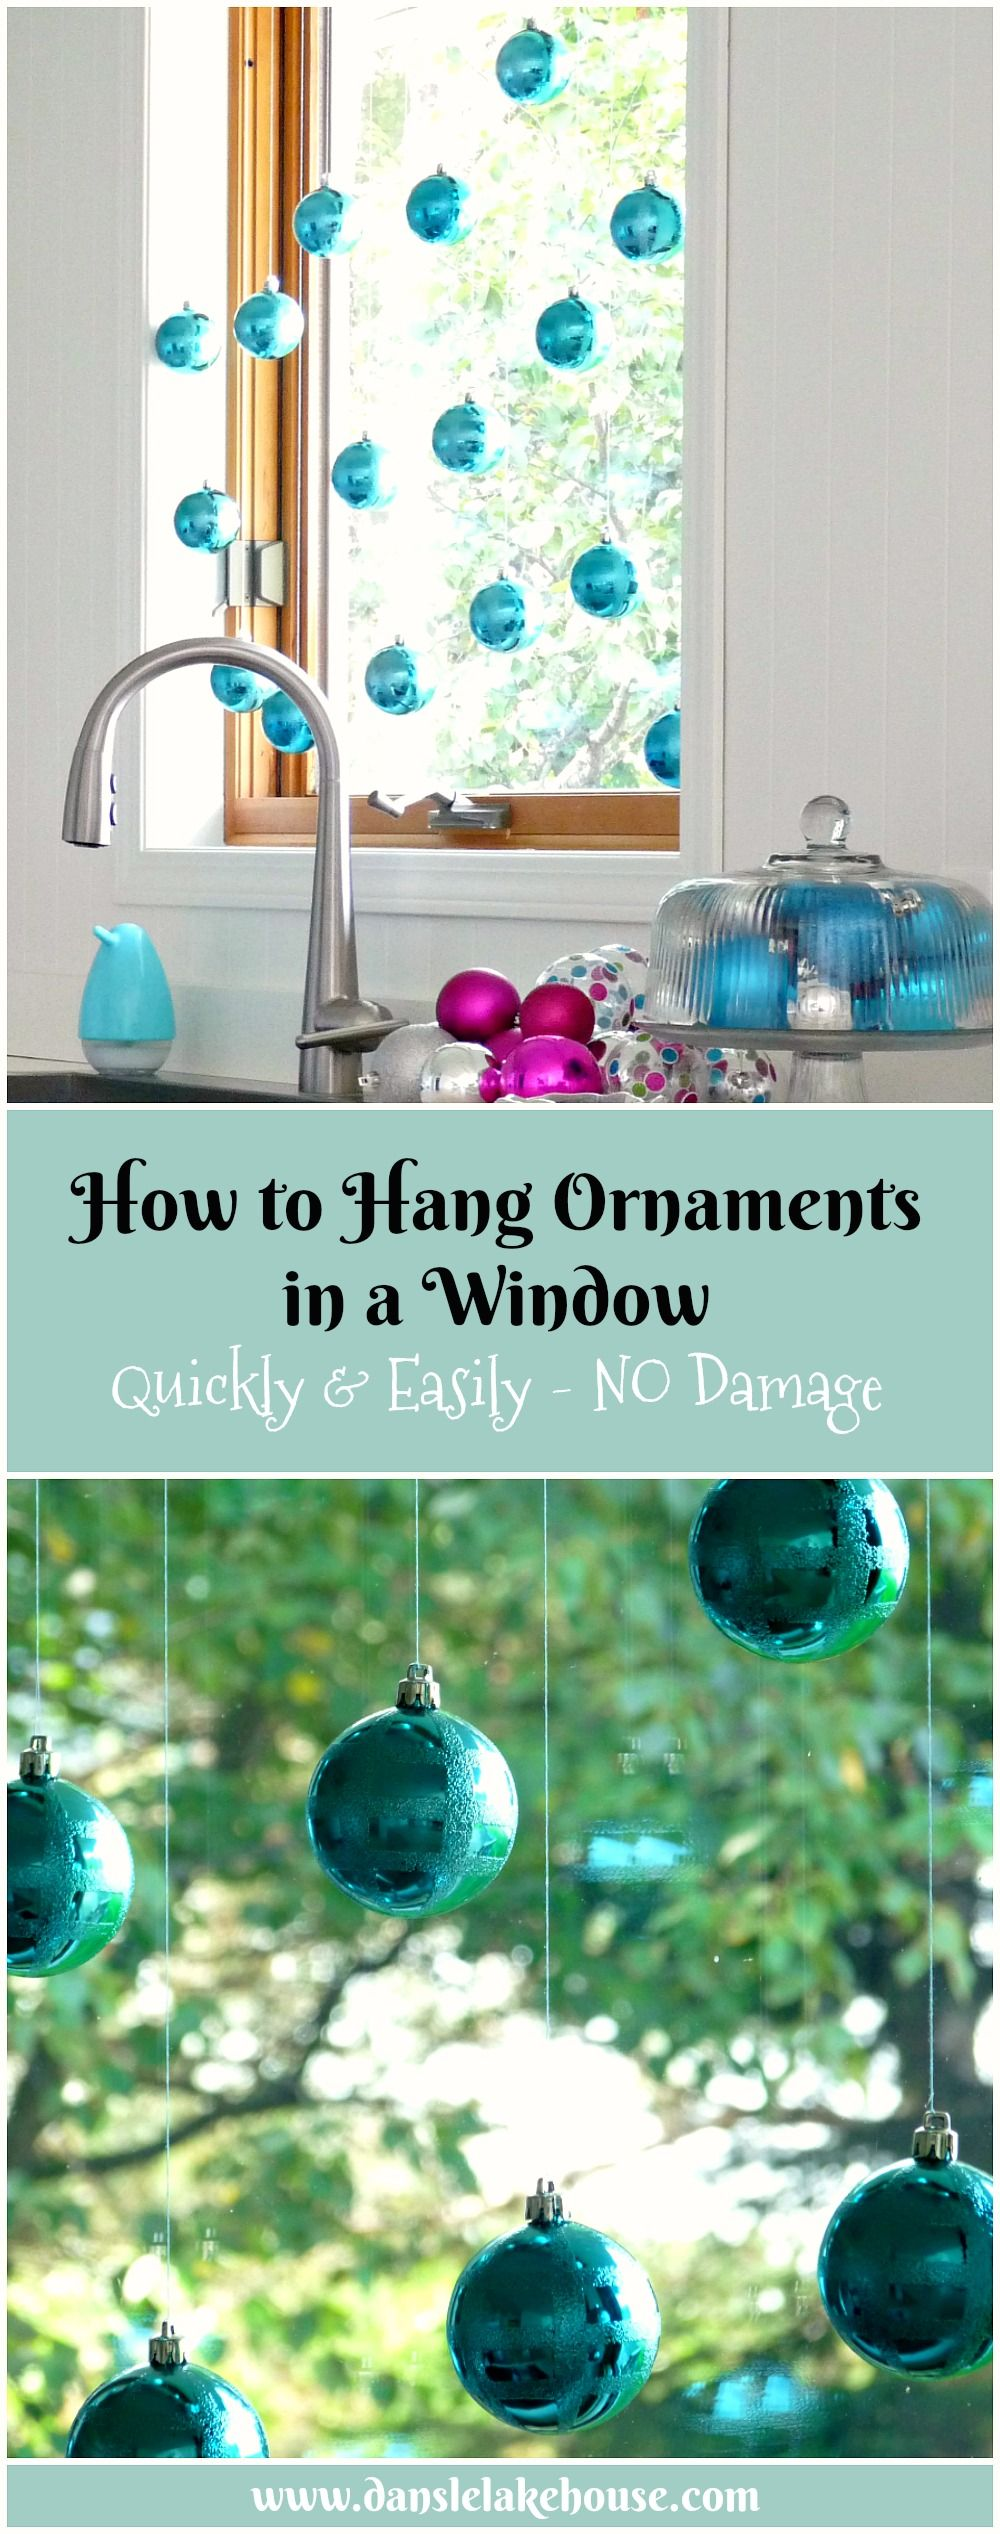 How To Hang Christmas Ornaments In A Window No Damage Dans Le Lakehouse Christmas Hanging Decorations Christmas Decor Diy Christmas Ornaments